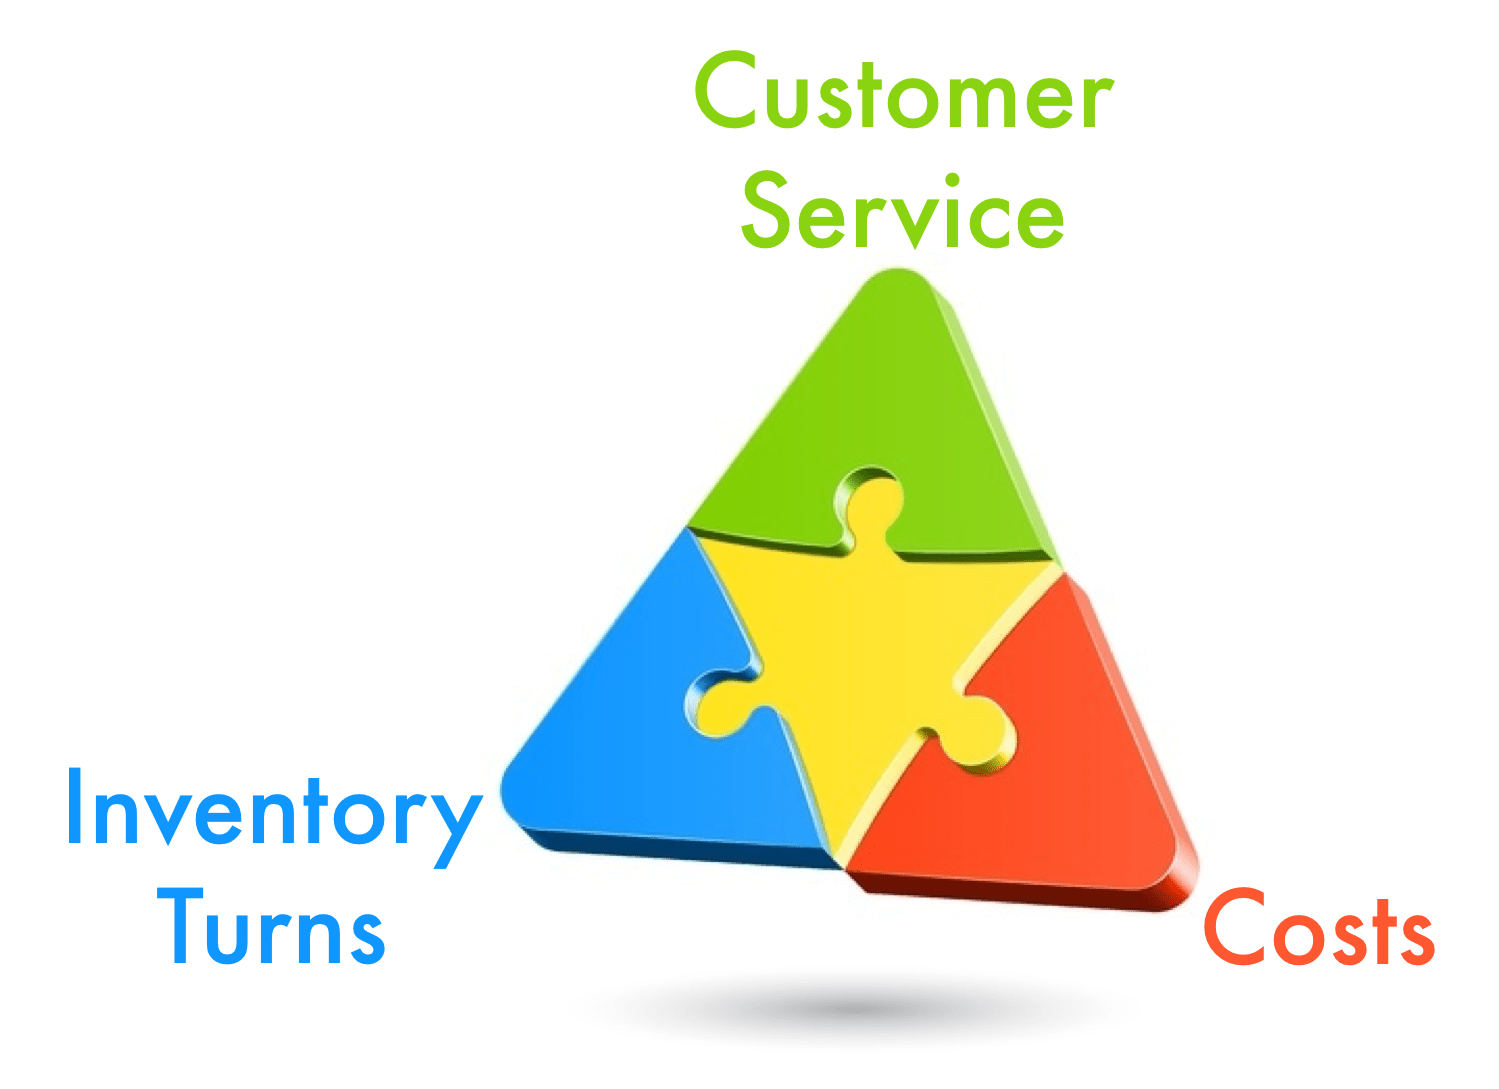 Costs Inv Customer Service V2